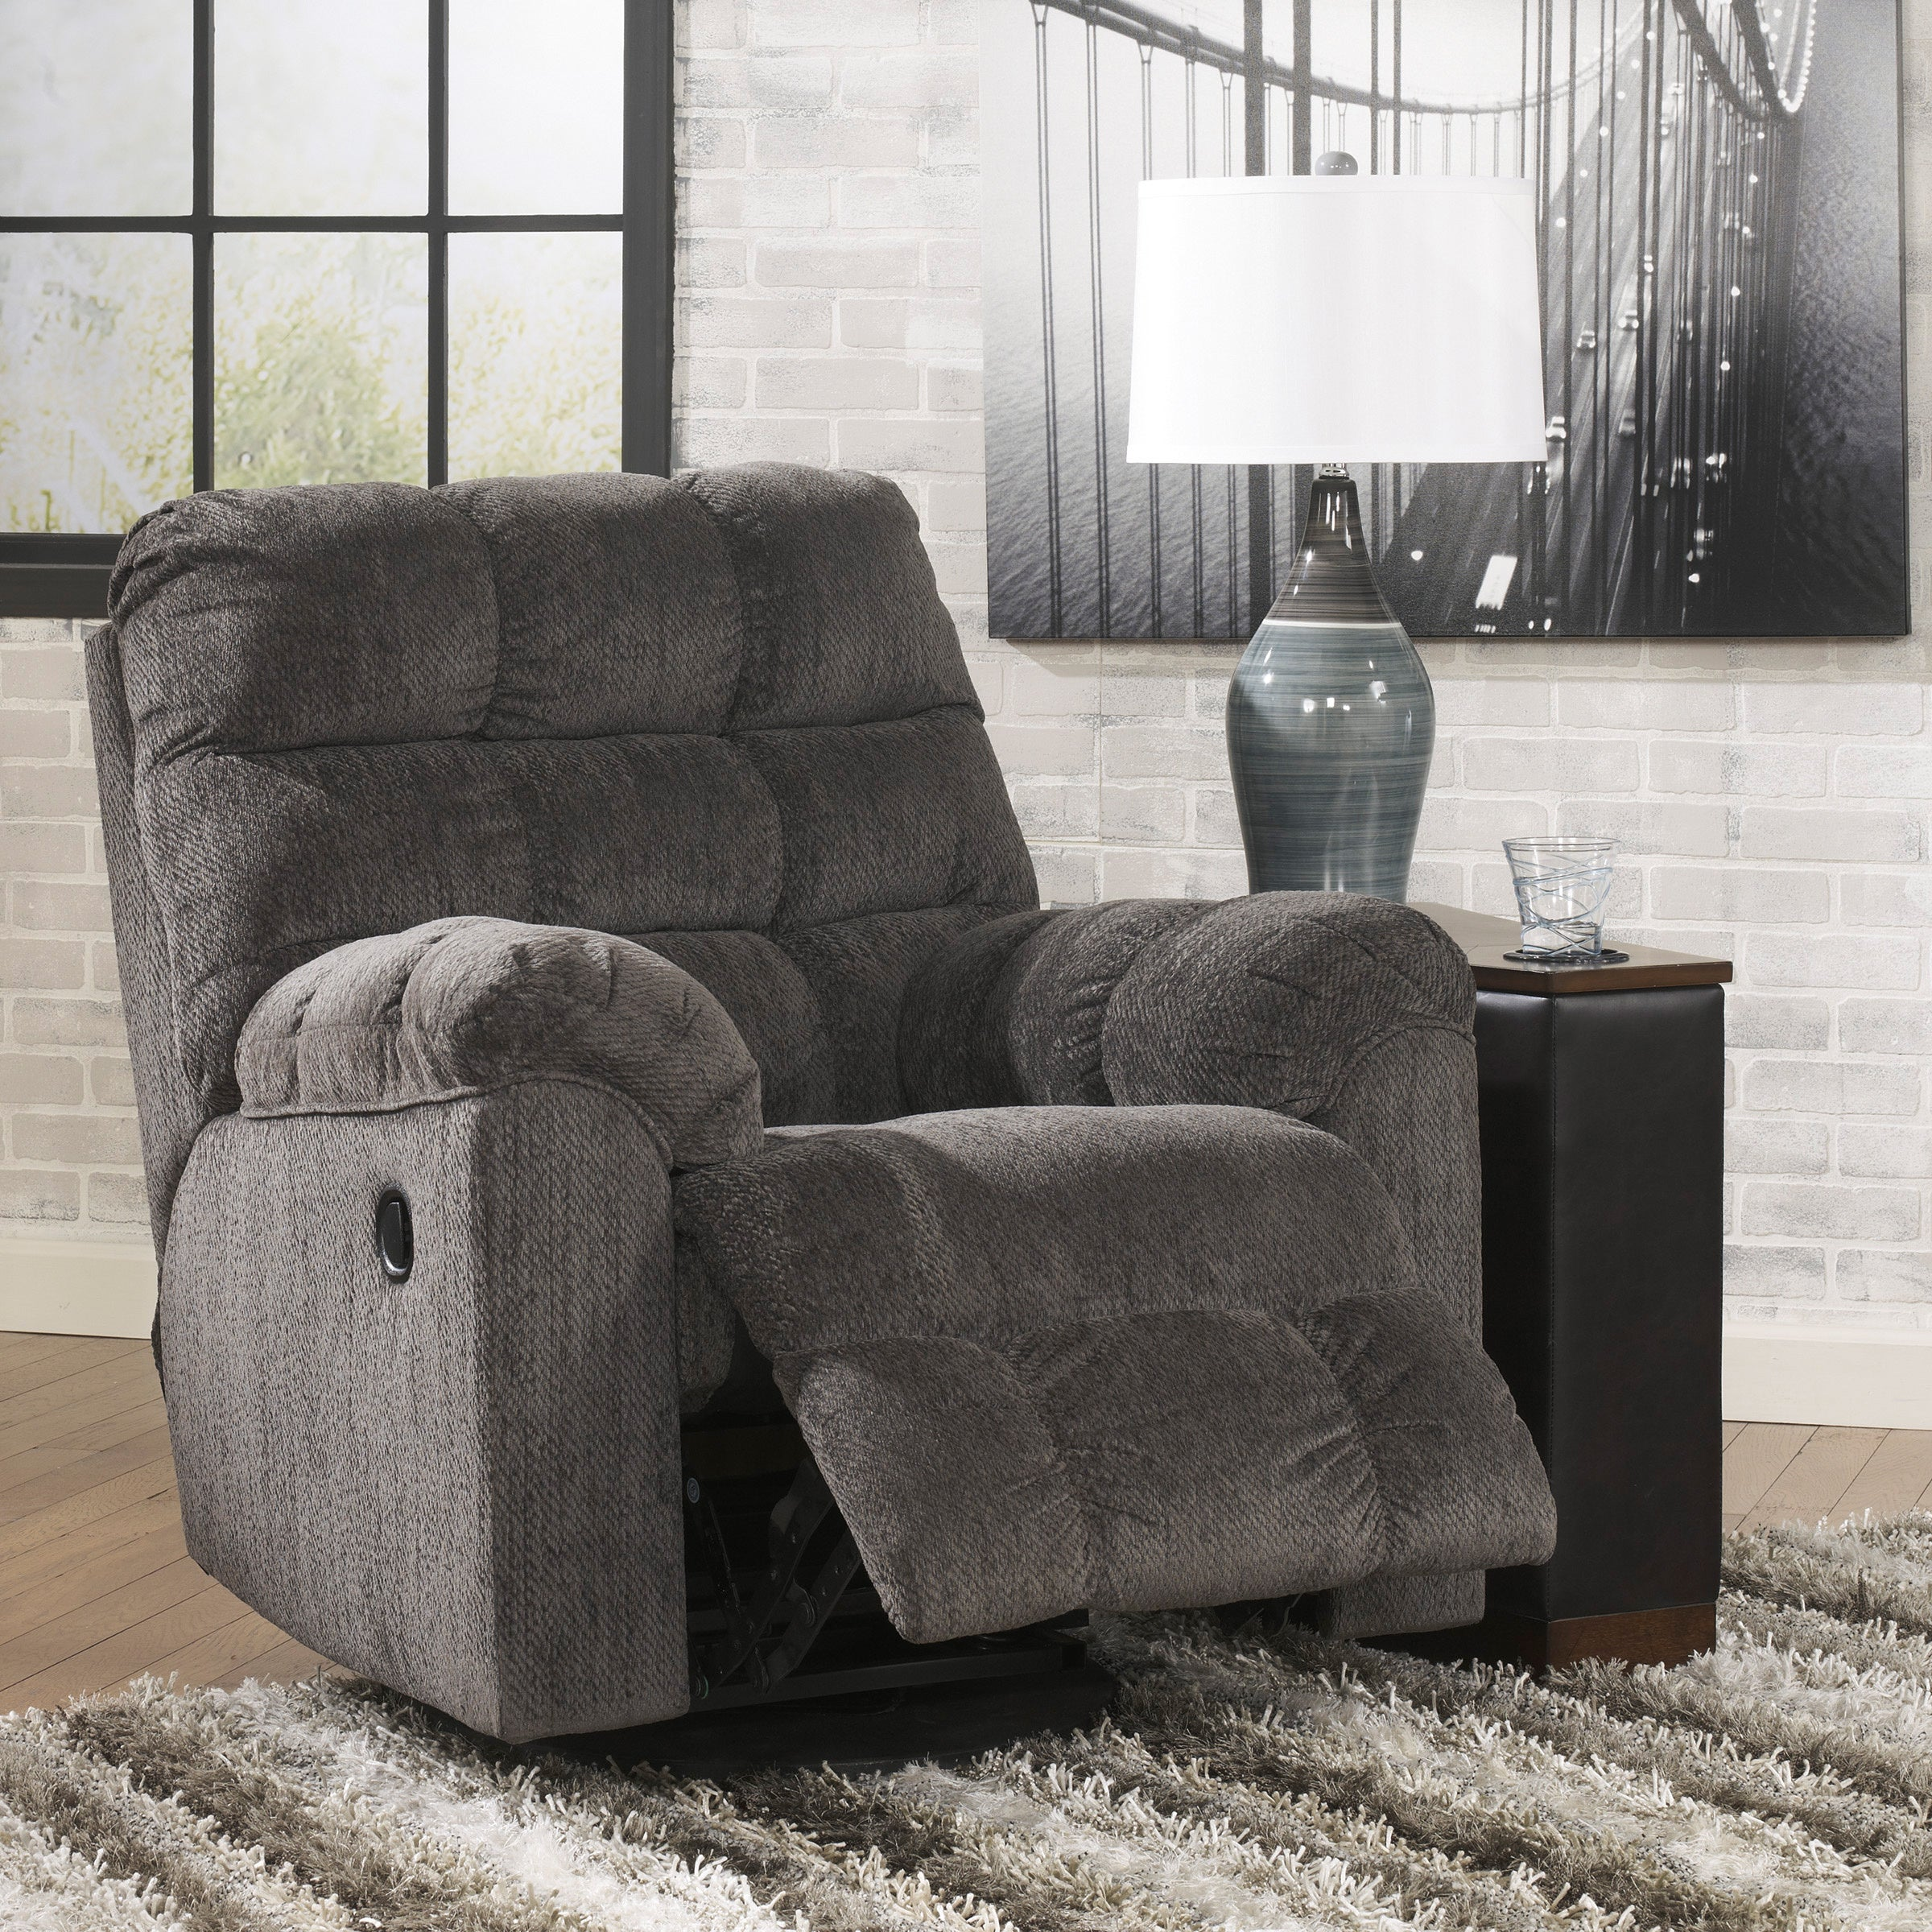 smashing franklin rocker furniture recliners product recliner captain swivel in